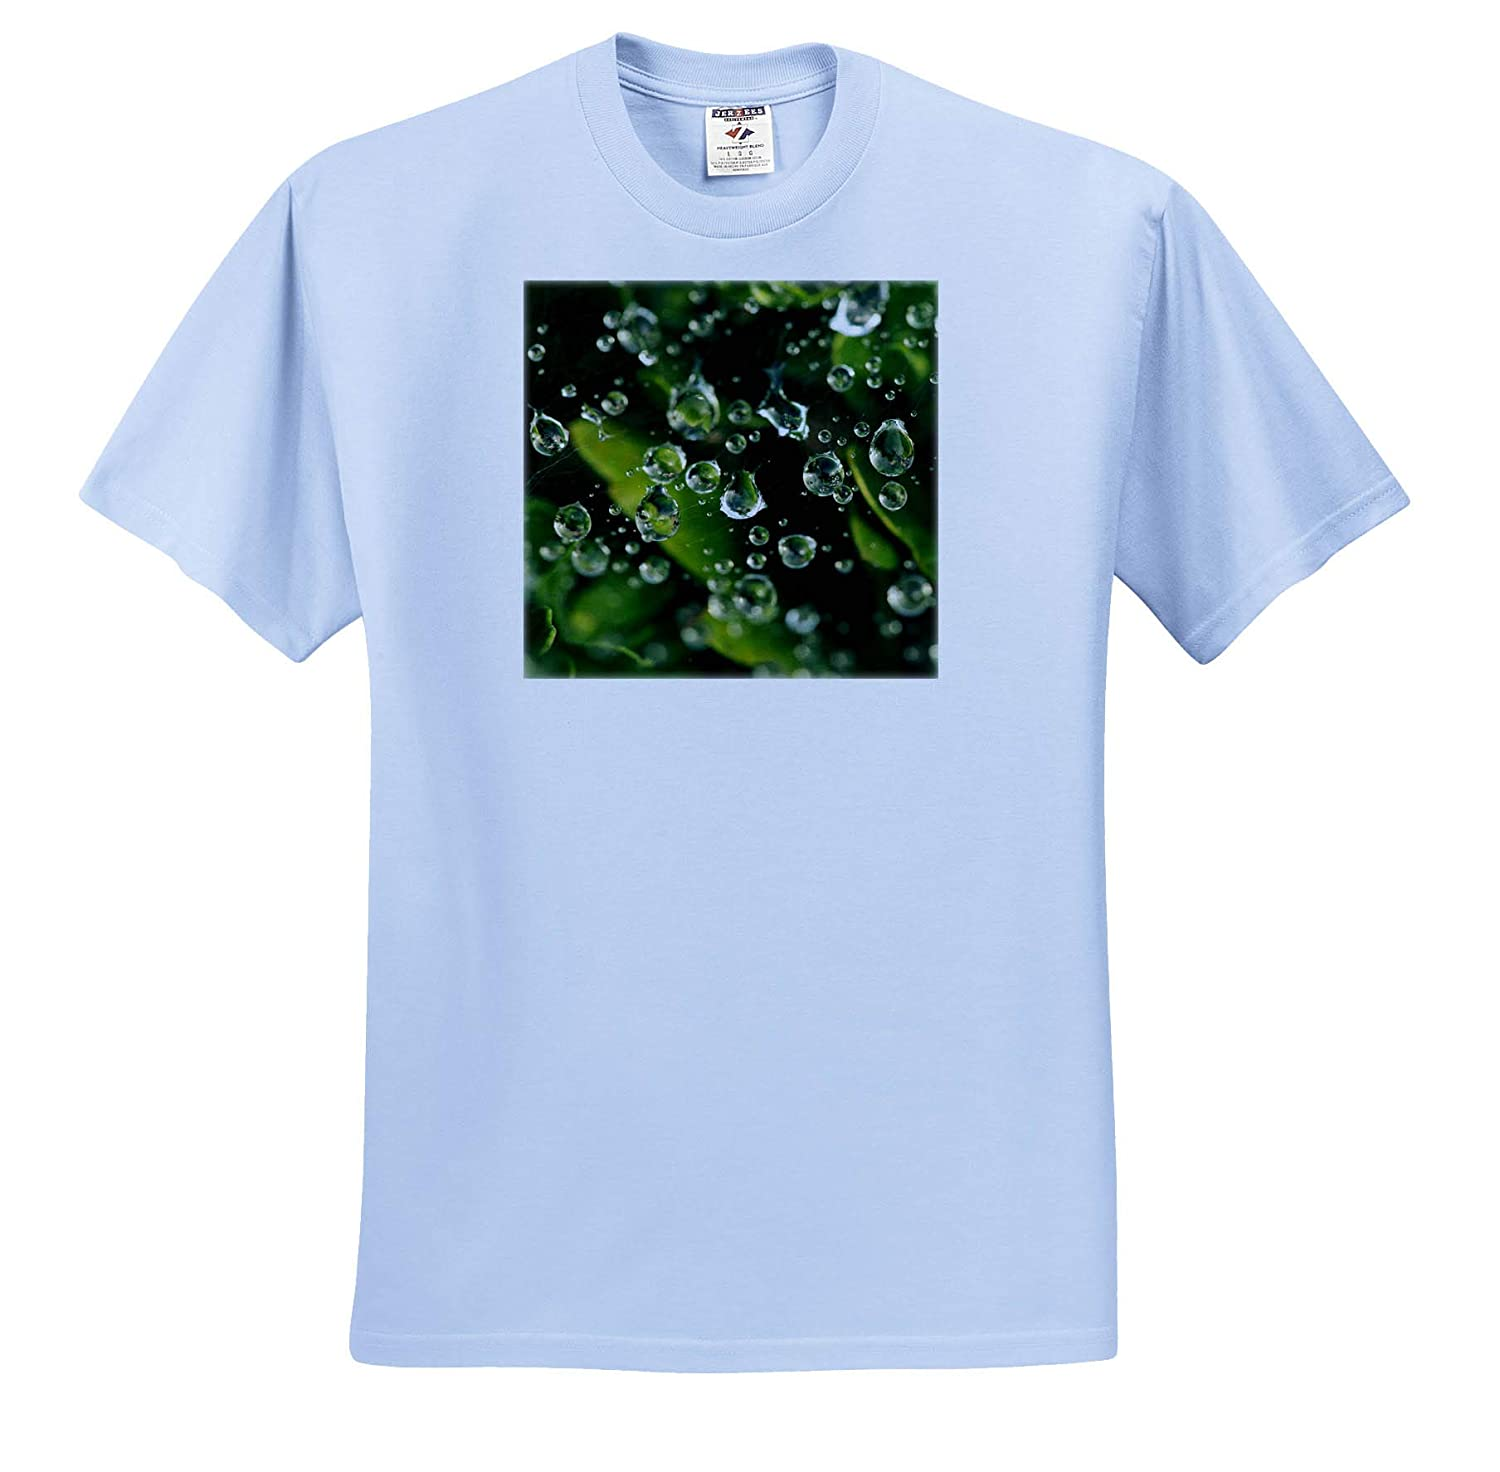 ts/_319065 - Adult T-Shirt XL 3dRose Stamp City Macro Photograph of Raindrops on a Spiderweb Over Green Leaves Nature